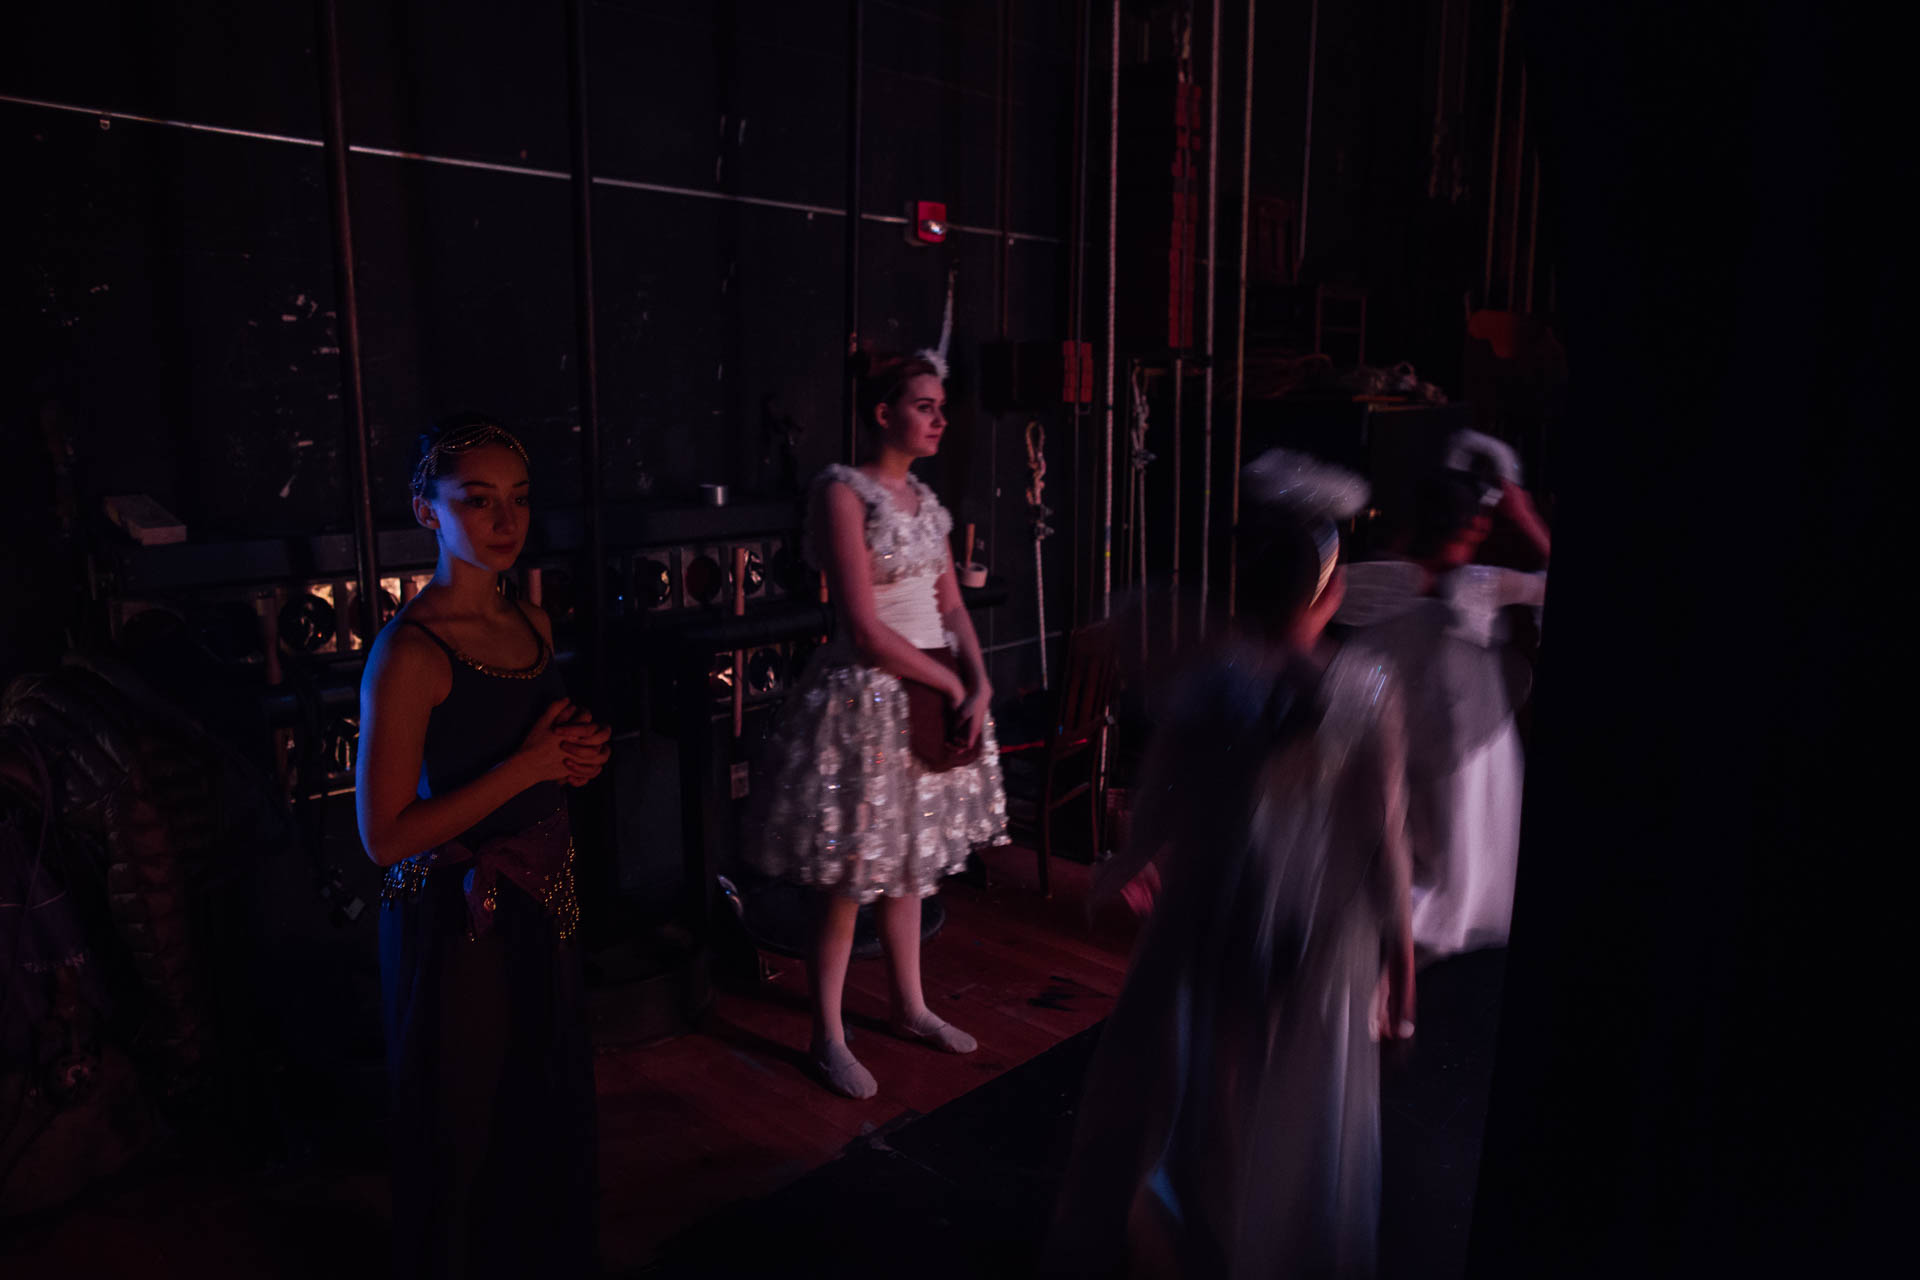 nutcracker-ballerinas-waiting-to-go-on-stage-6479